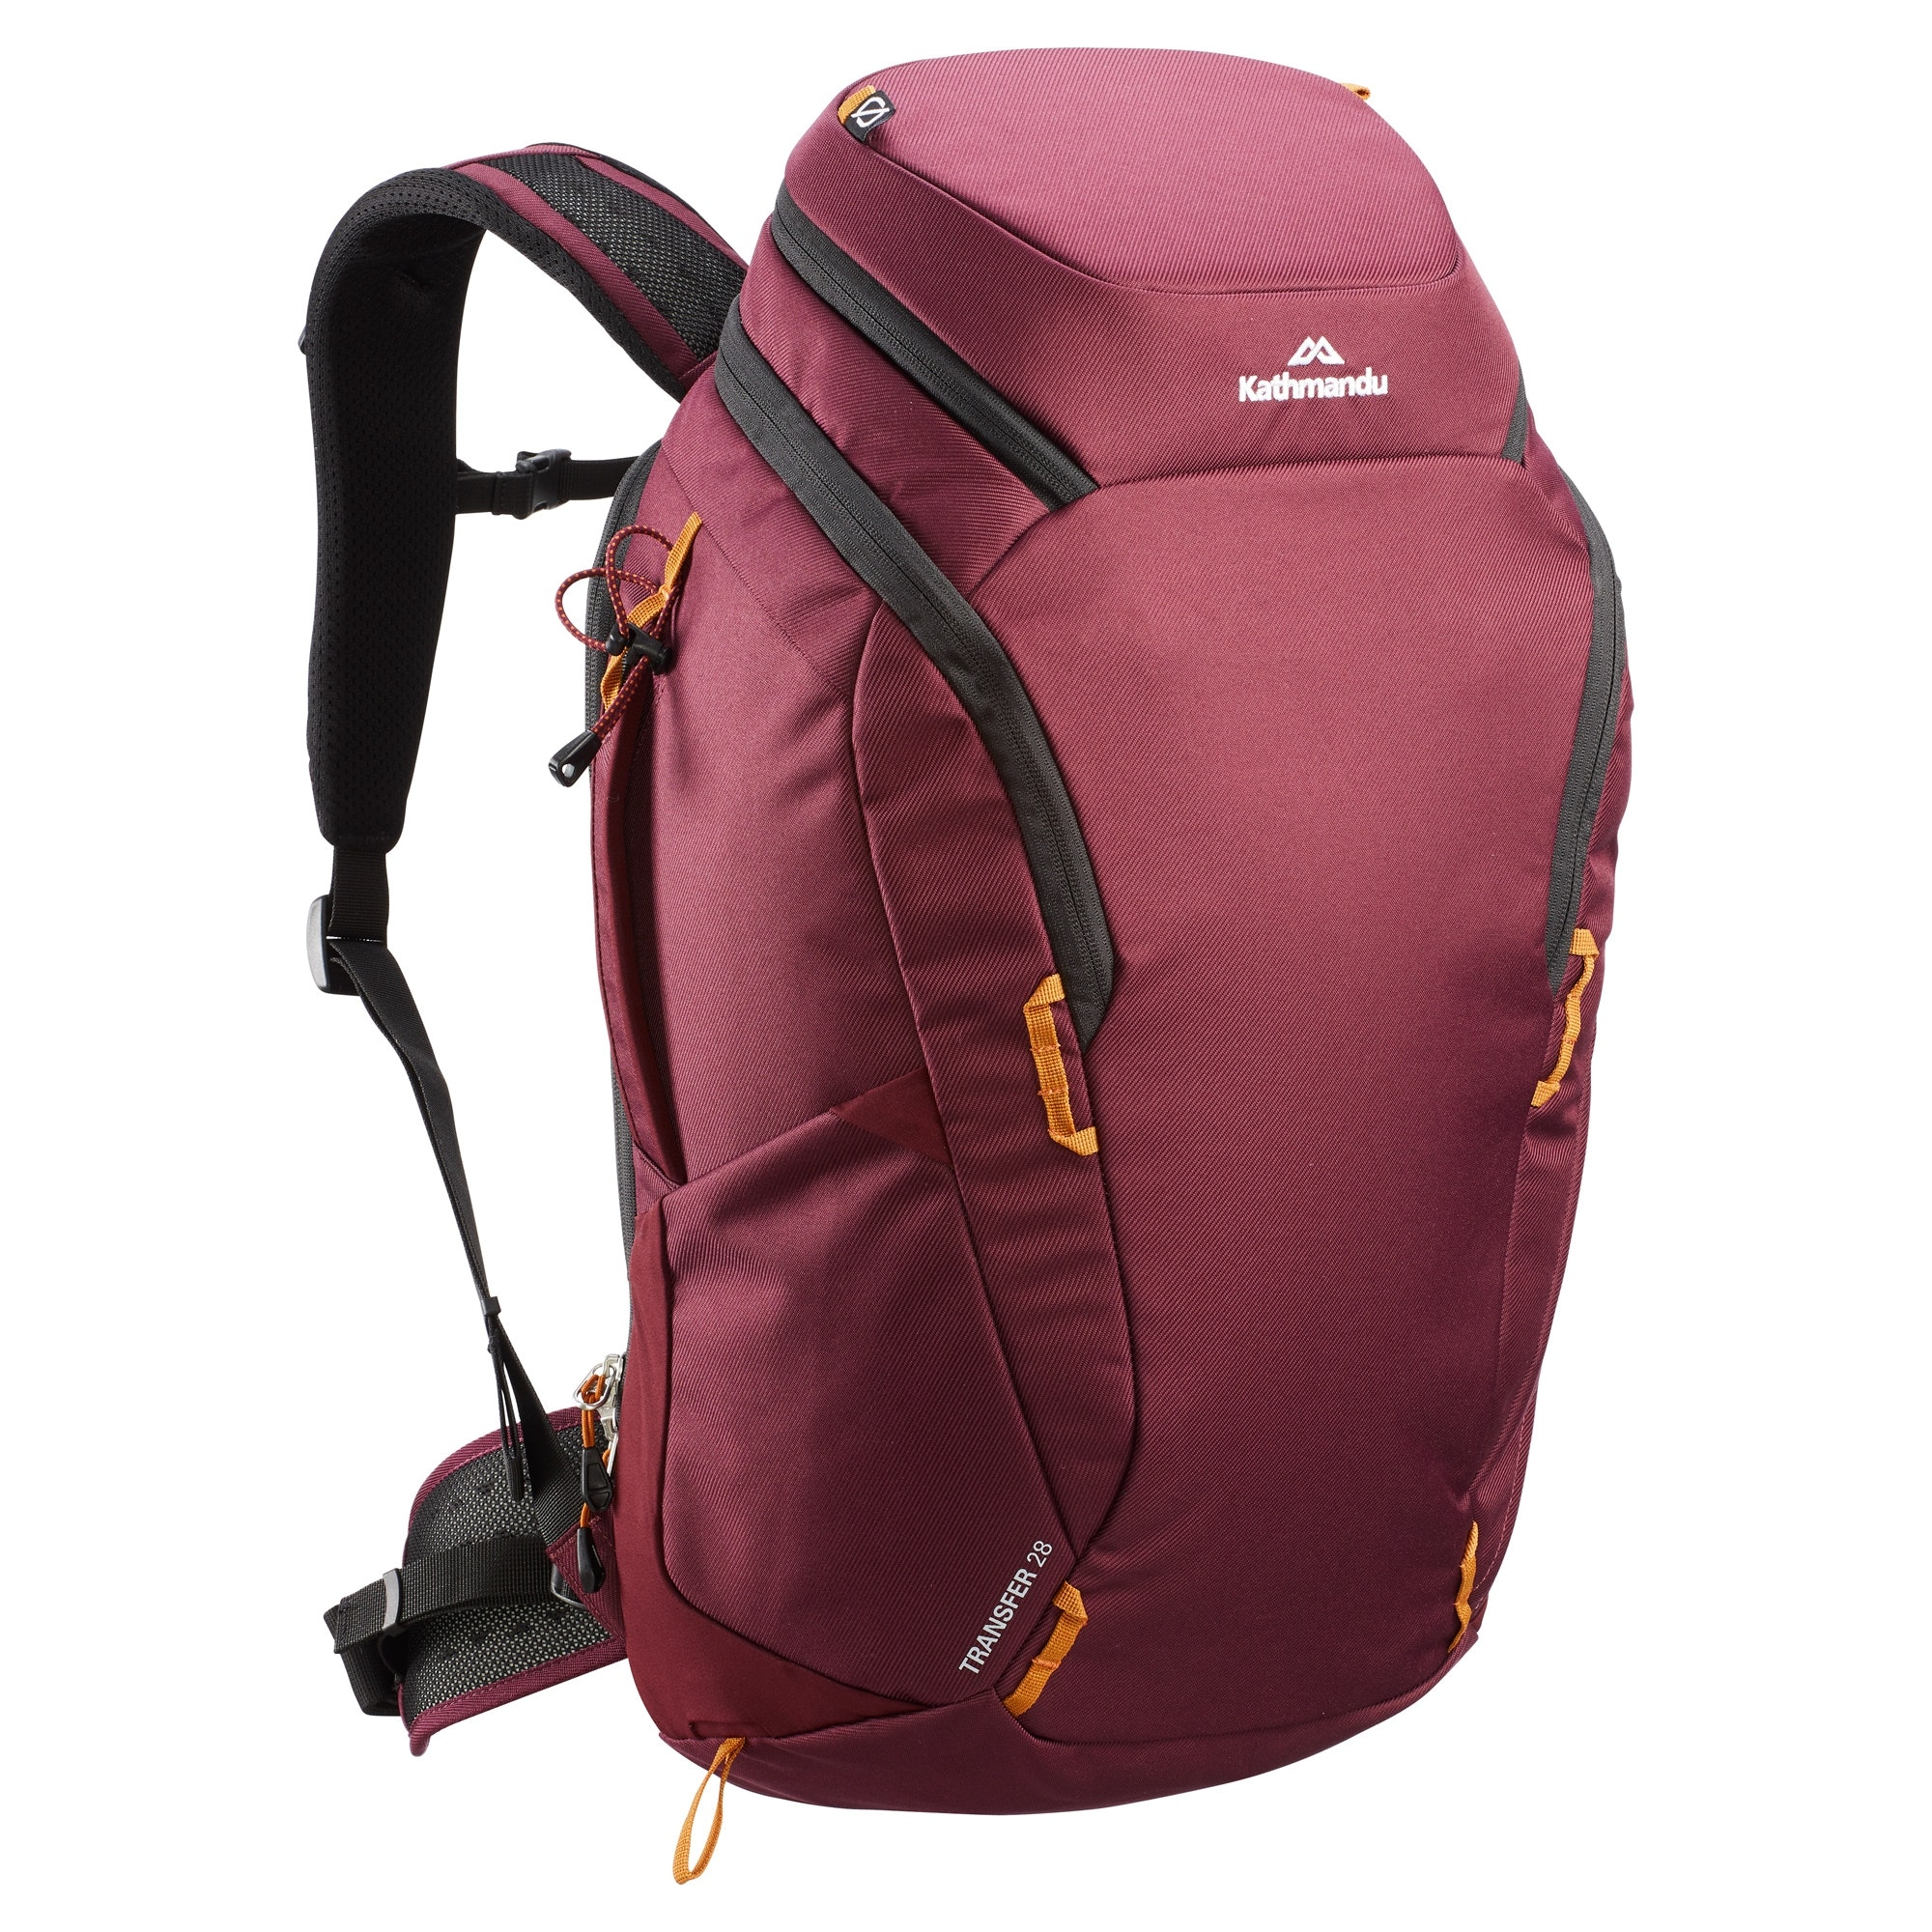 NEW-Kathmandu-Transfer-28L-Commuter-Bag-Laptop-Backpack-Rucksack-Travel-Pack-v3 thumbnail 27